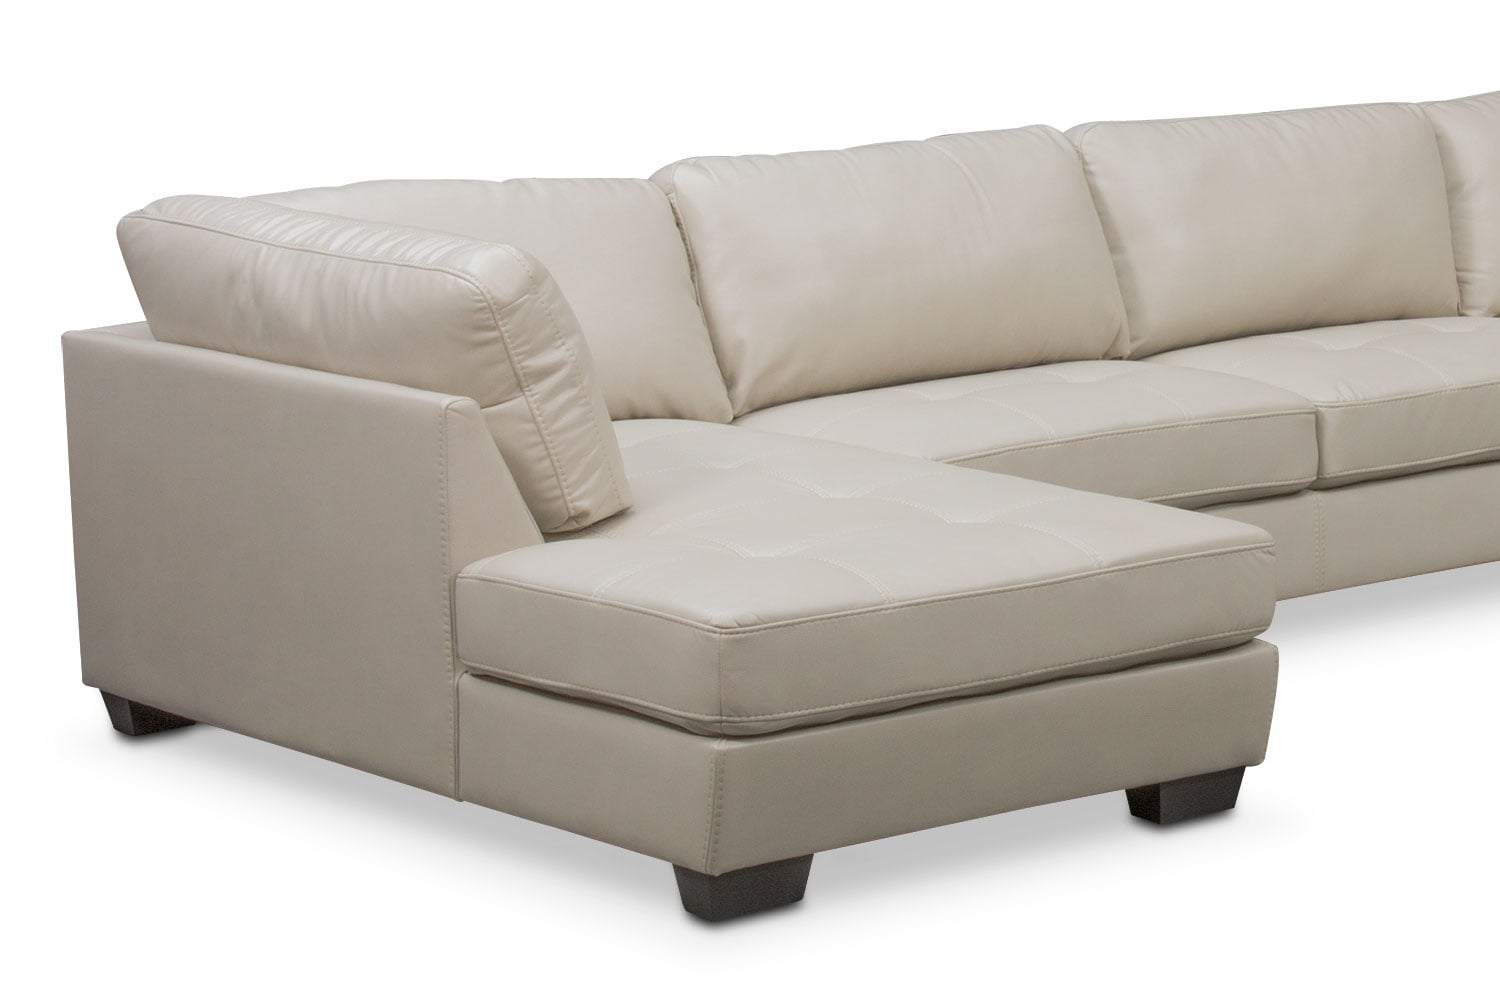 Santana 4 piece sectional with left facing chaise ivory for 4 piece sectional sofa with chaise